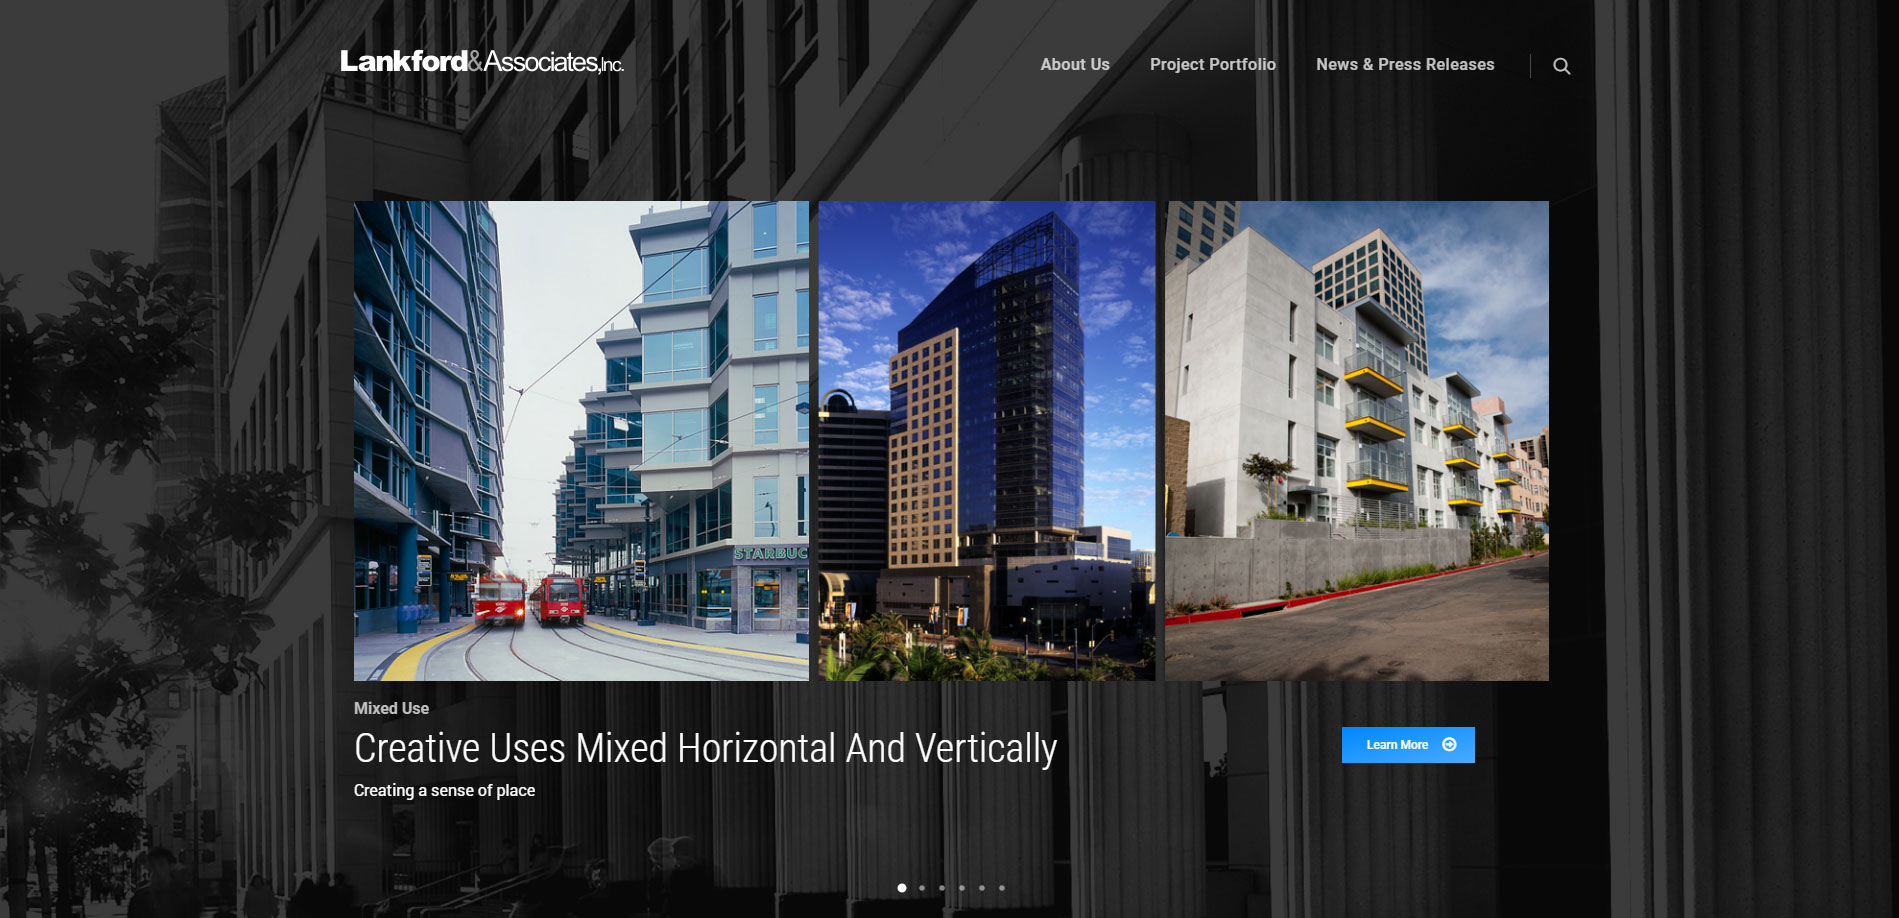 Lankford & Associates, Inc. Website Goes Live